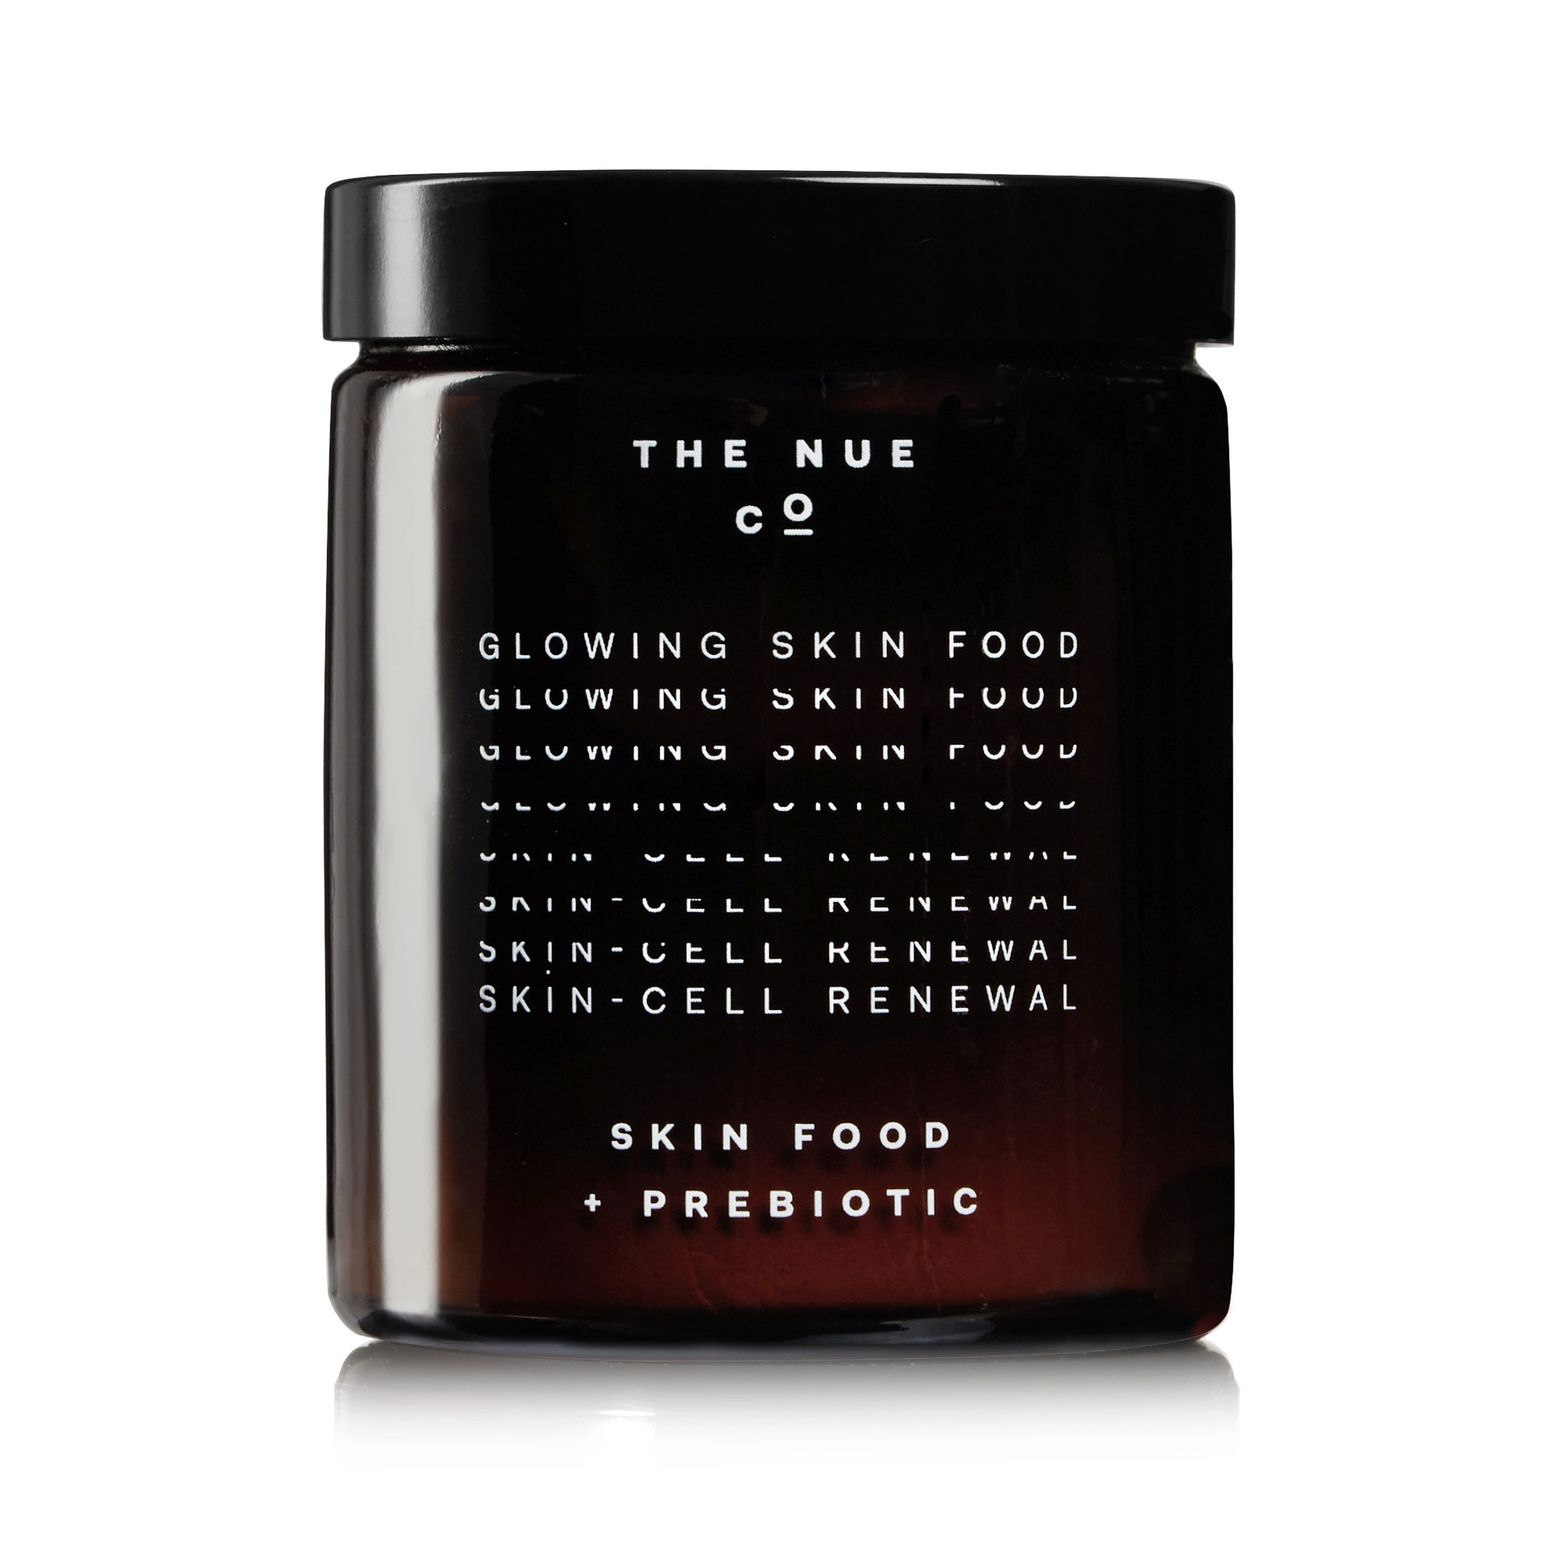 The Nue Co. Skin Food